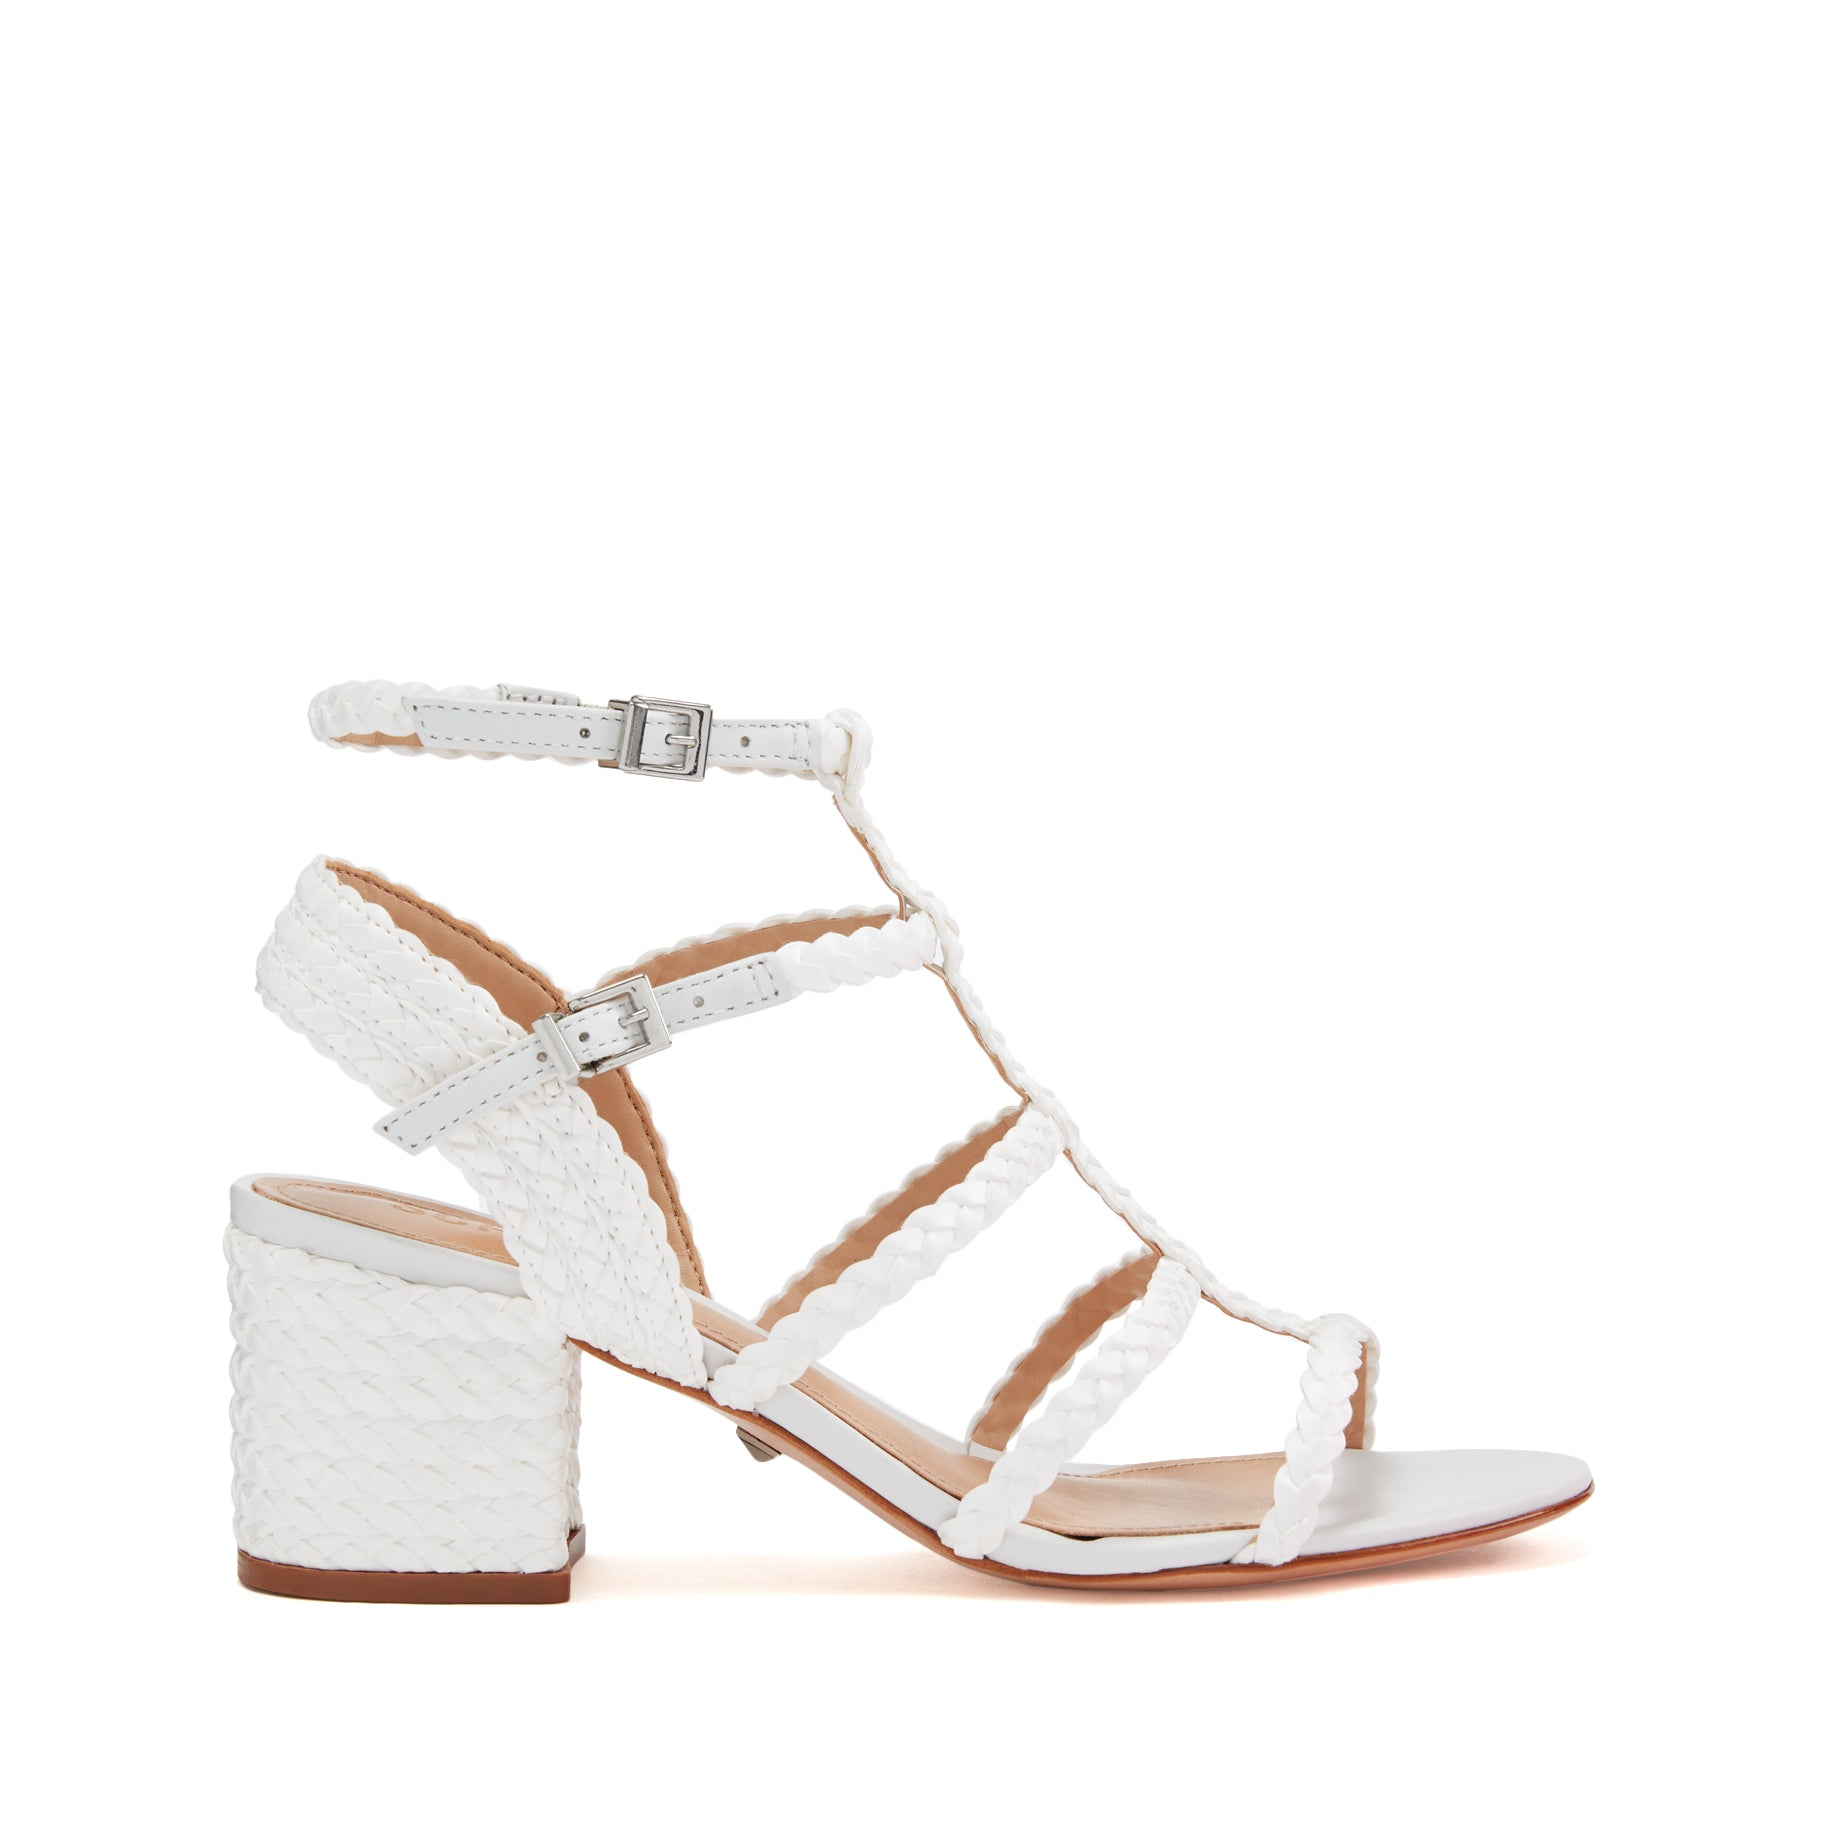 1202ff5986 Rosalia Mid Heel Sandal with Braid Detail | Schutz Shoes – SCHUTZ